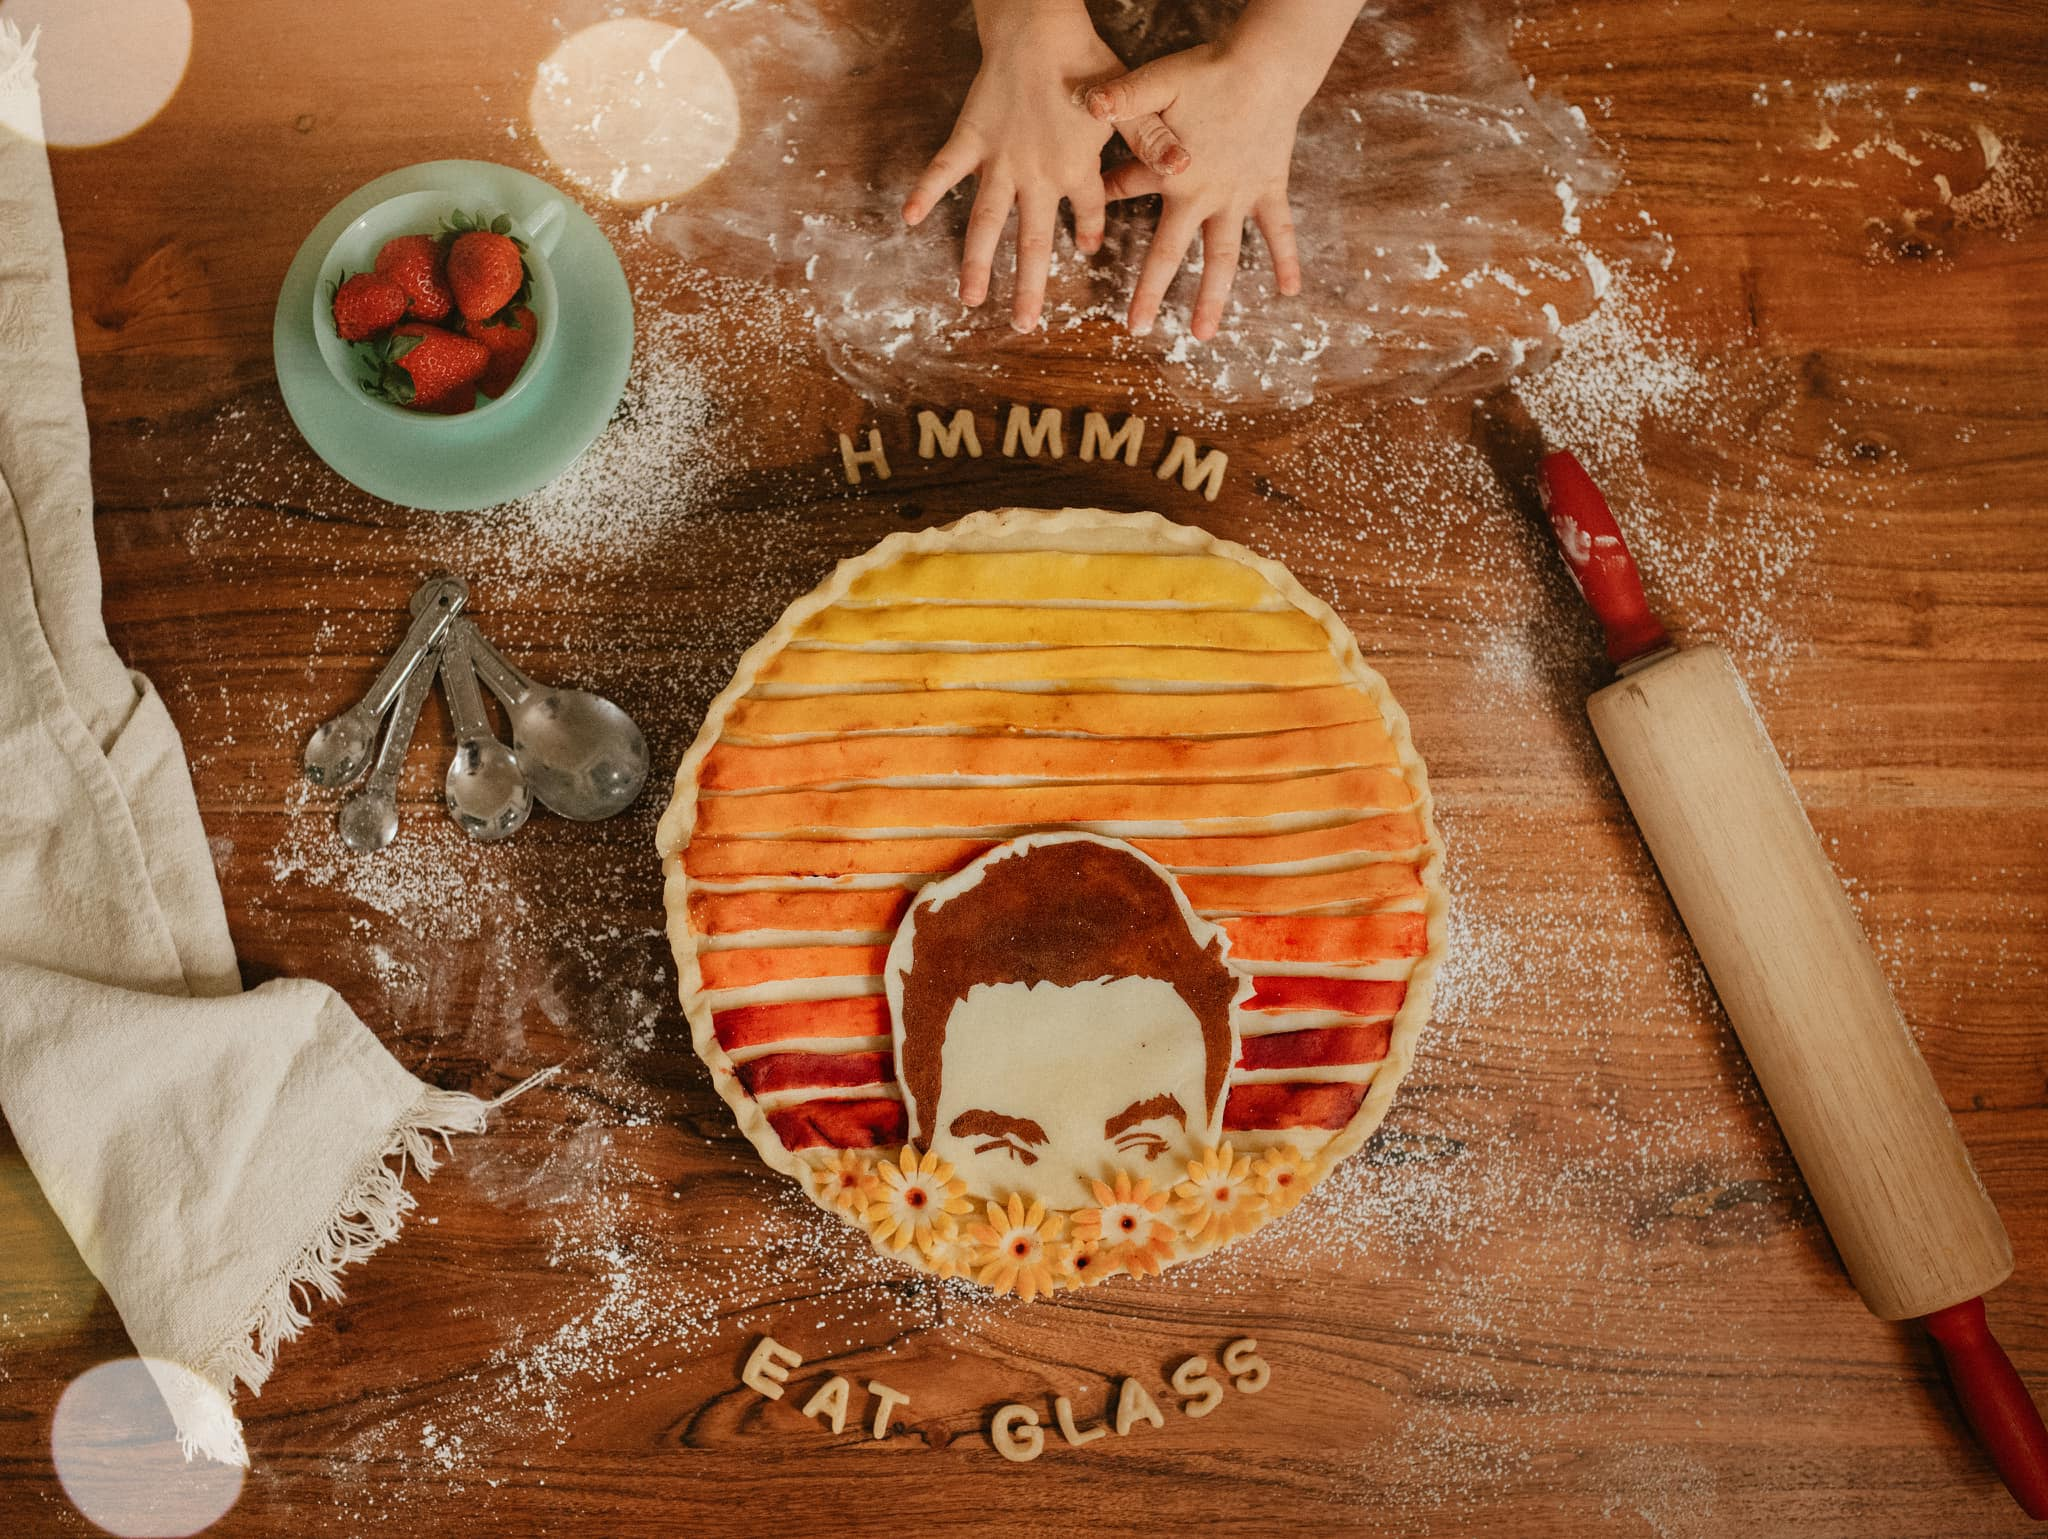 a freshly made pie with the face of one of the actors from schitt's creek on it